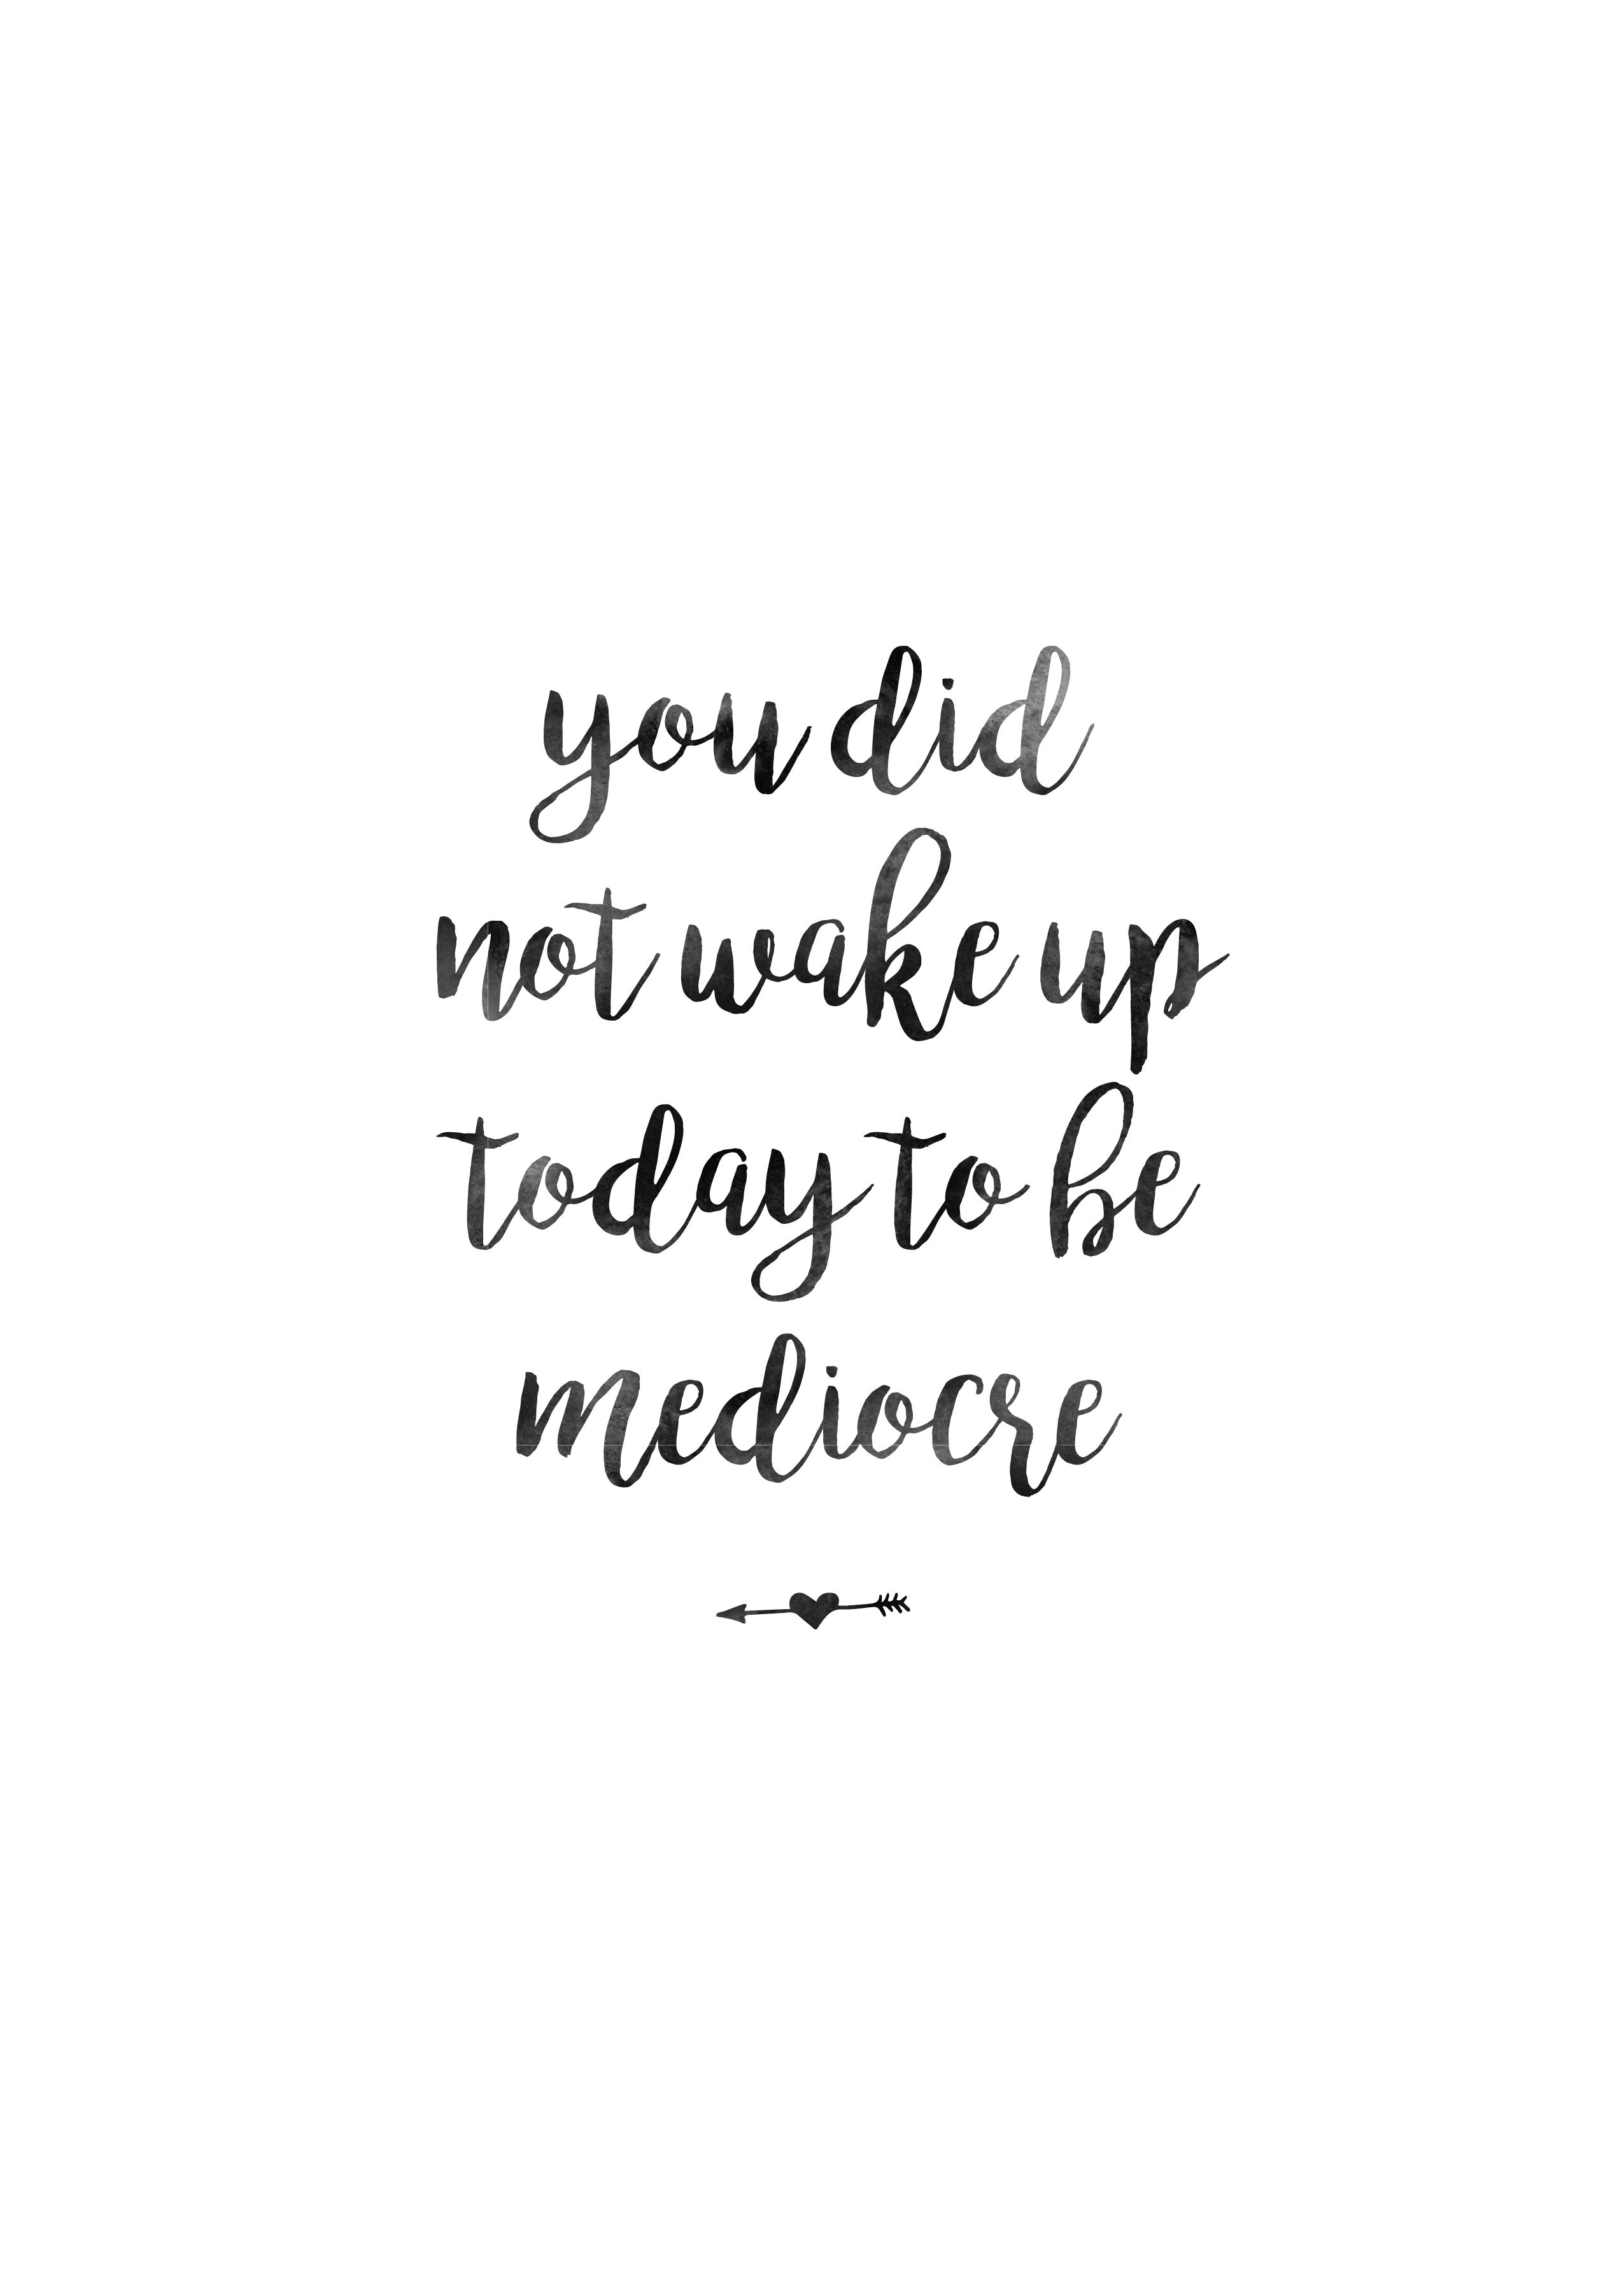 Get Up Quote : quote, Pretty, Little, Reminder:, Today, Mediocre!, Quotes,, Yourself, Quotes